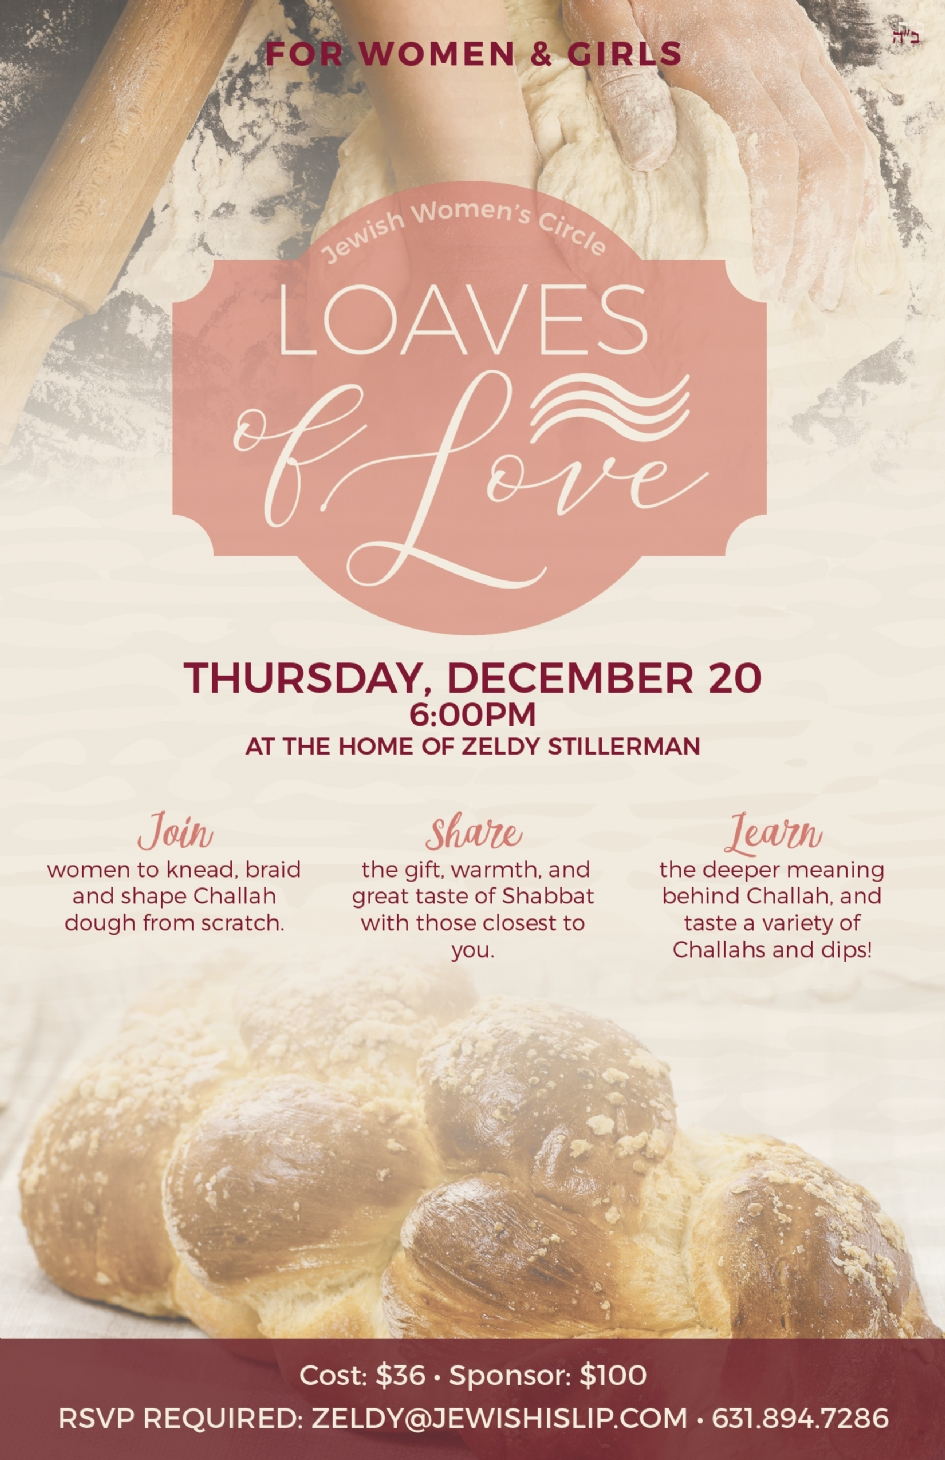 Loaves of Love - Challah Bake - Chabad Of Islip Township